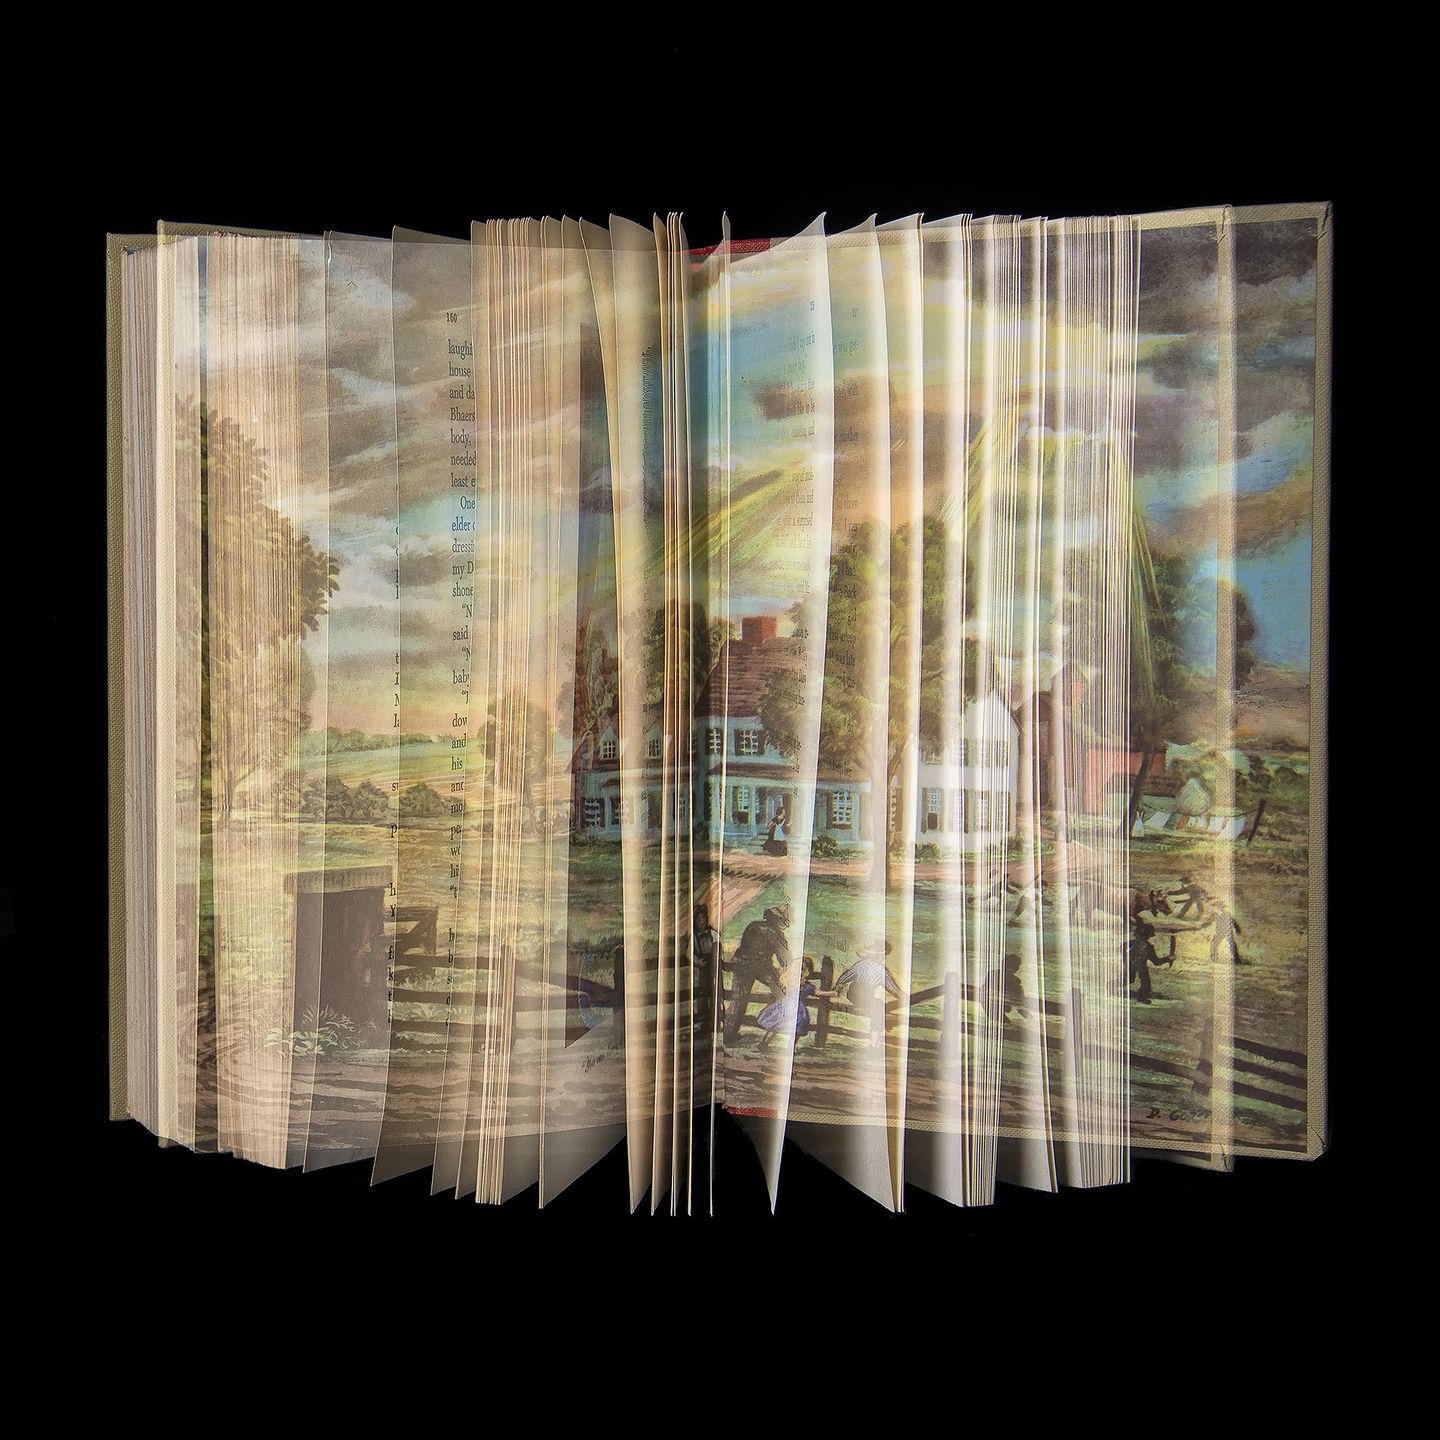 """Ellen Cantor's """"Prior Pleasures"""" series of double-exposure photographs (no Photoshop involved!) """"explores memory and preservation of the past while ensuring the creation of a visual legacy for the next generation. The books photographed for this series are the ones I have carried with me since childhood,"""" she describes.  Photograph by Ellen Cantor.  Learn more in """"Seeing Double"""" below."""